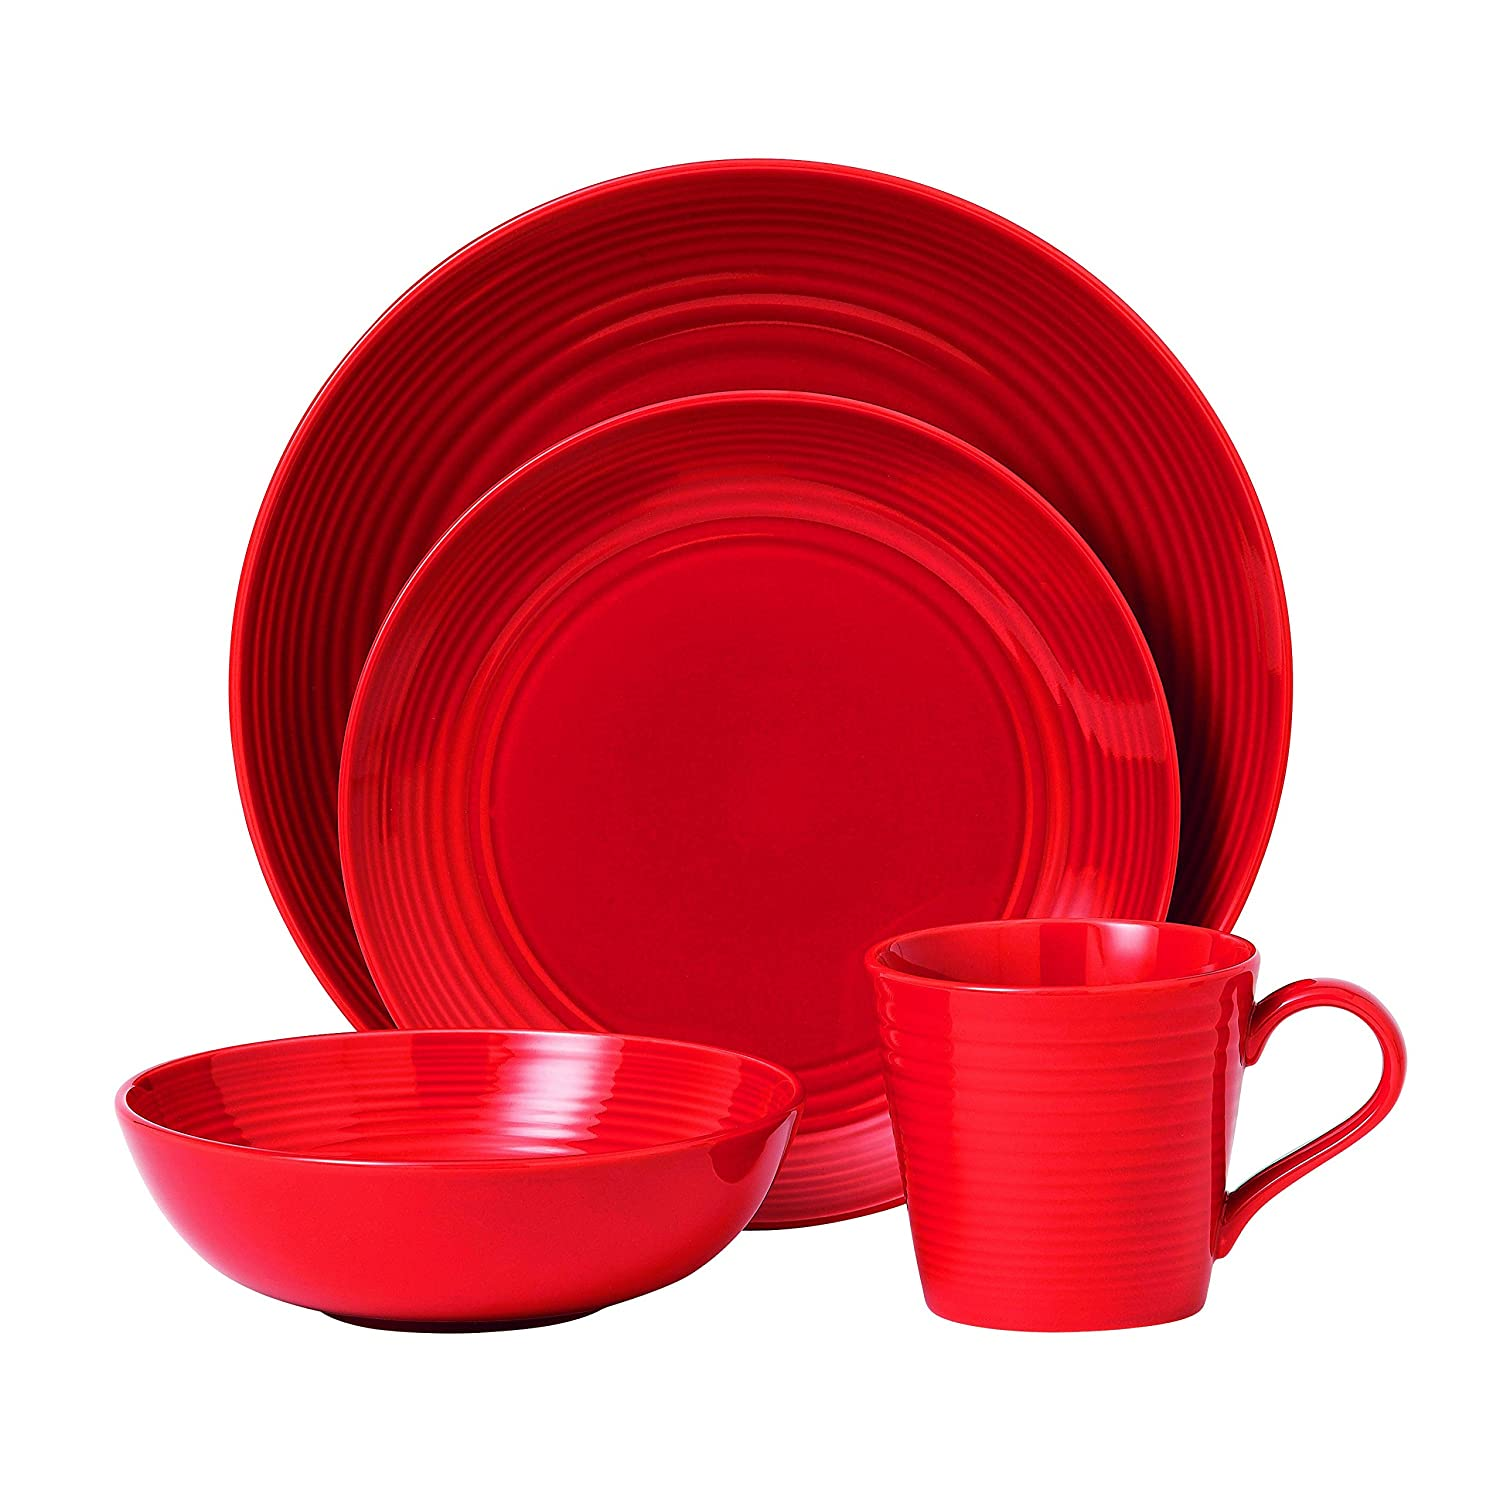 Amazon.com | Royal Doulton Gordon Ramsay Maze 4-Piece Place Setting Set Chilli Red Dinnerware Sets  sc 1 st  Amazon.com & Amazon.com | Royal Doulton Gordon Ramsay Maze 4-Piece Place Setting ...